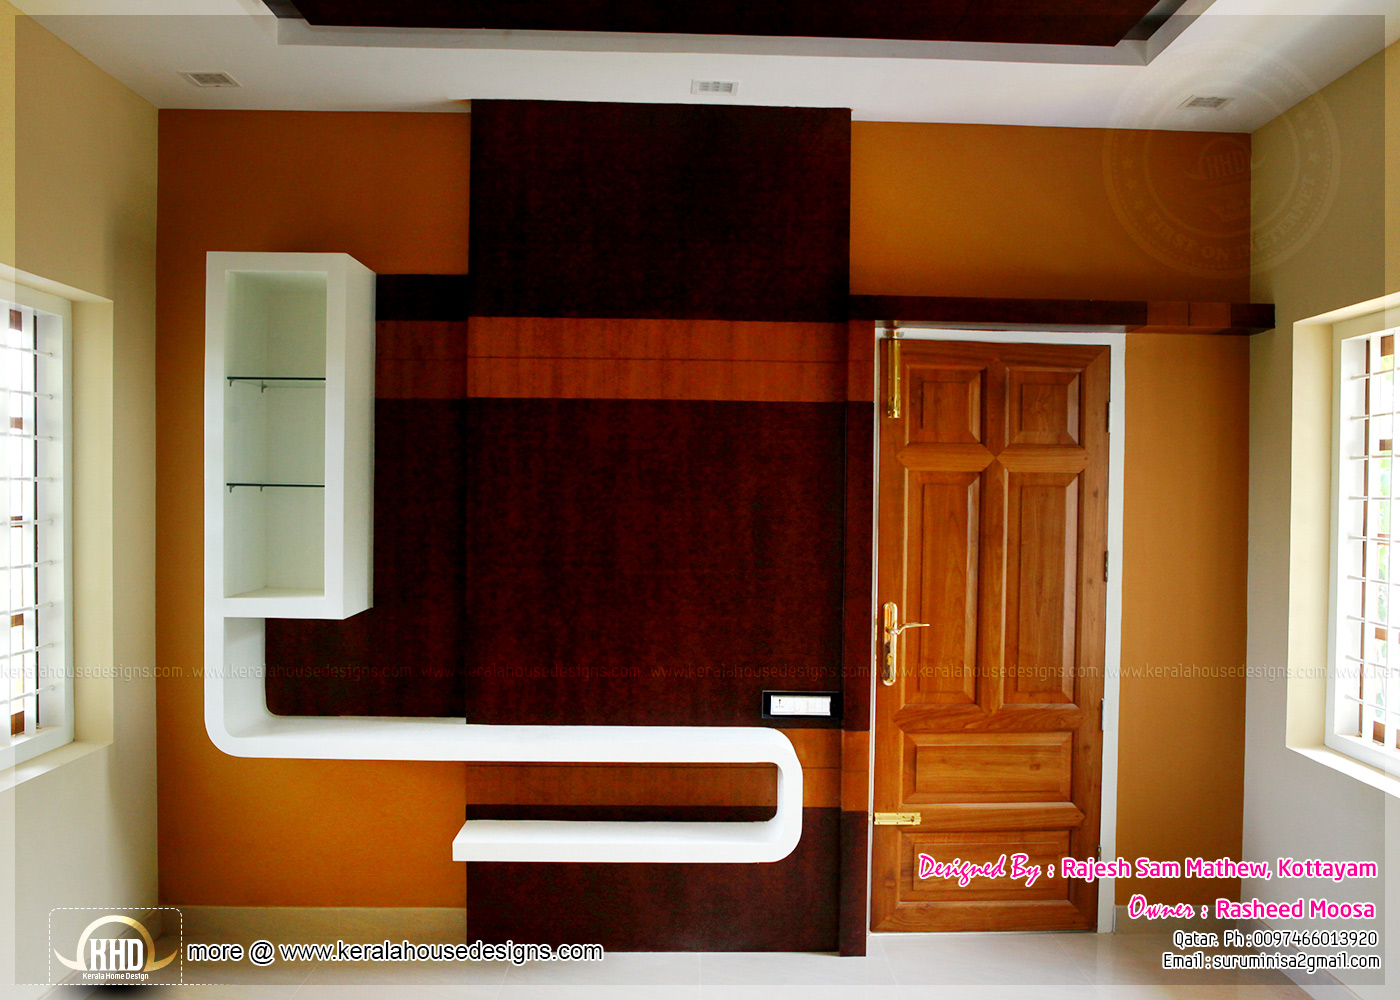 Bedroom Designs Tamilnadu Of Kerala Interior Design With Photos Kerala Home Design